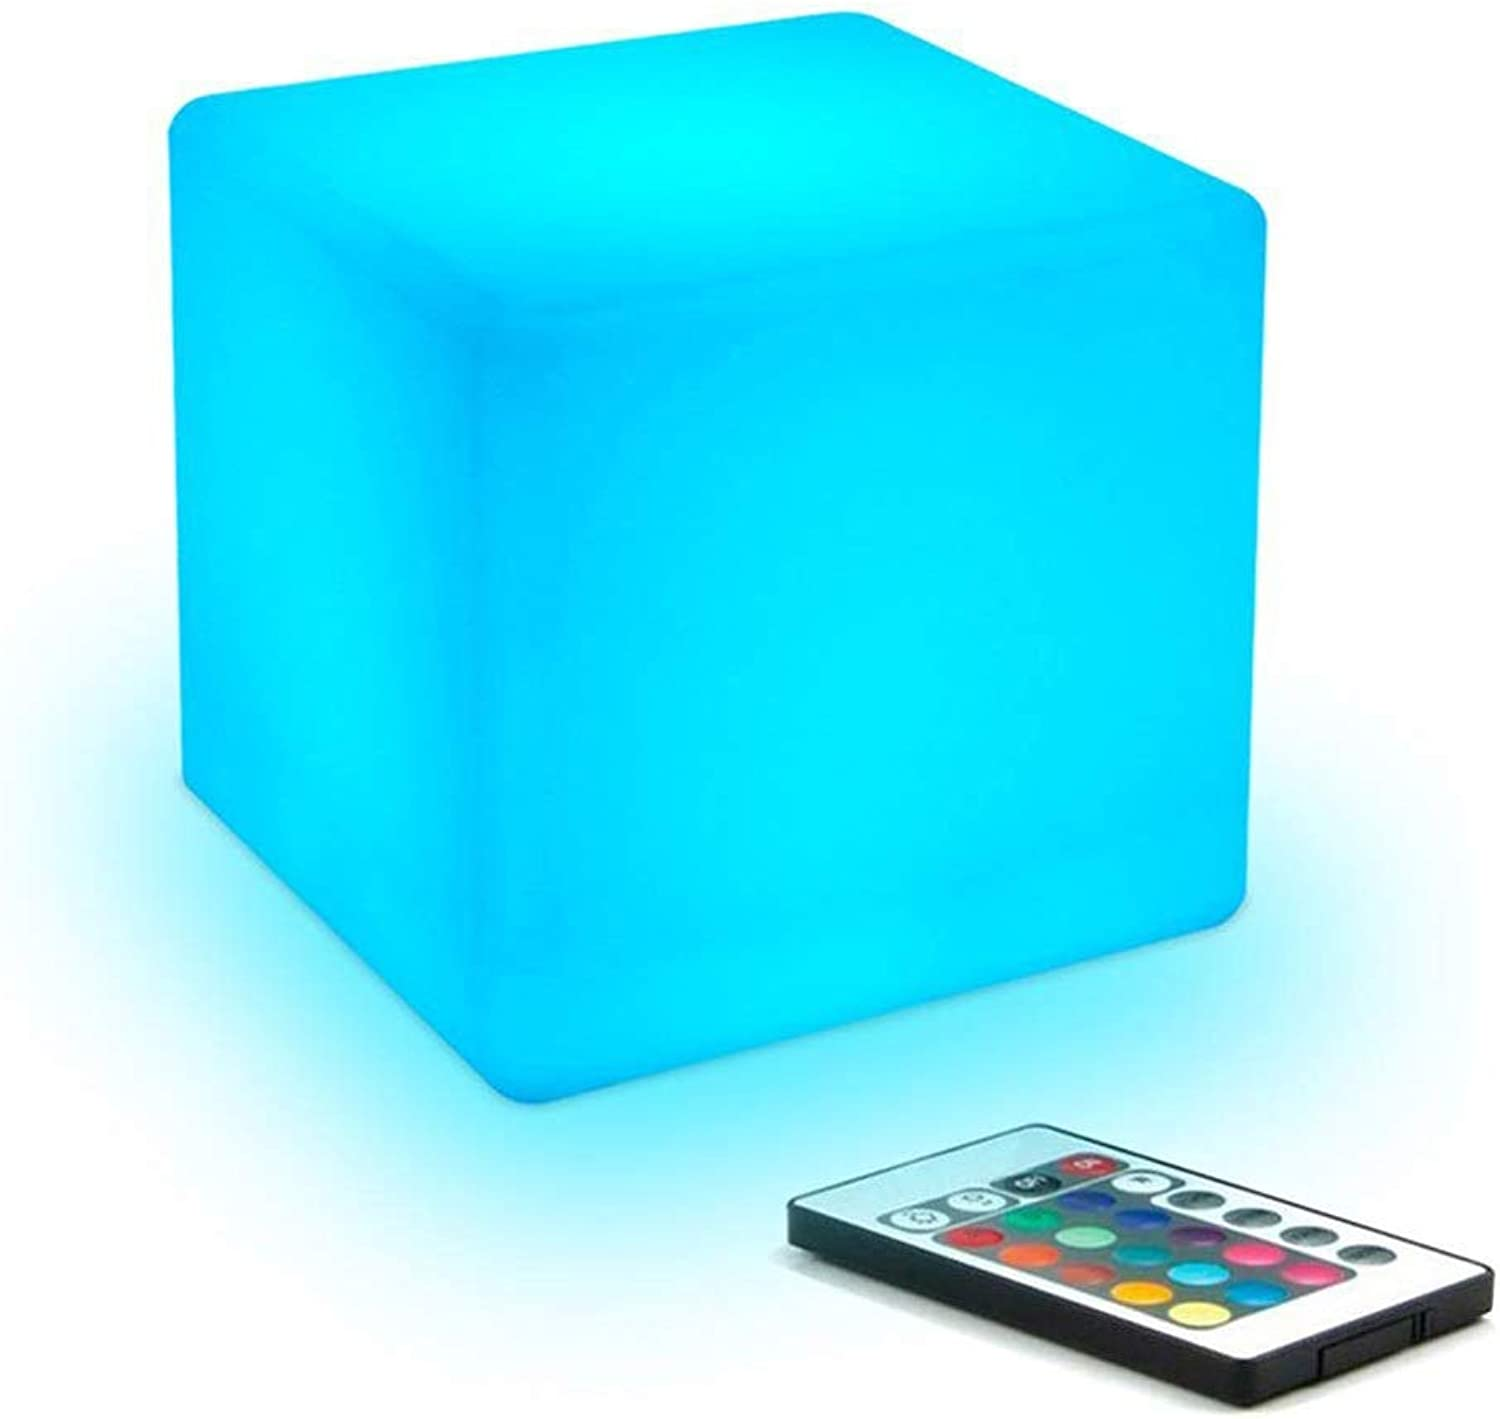 Kikioo Fashion Waterproof LED Cube Mood Light with Remote Control USB Lights Stool& 16 RGB Colour Adjustable, 4 Mode Table Bedroom Chair Lamp for Bar Pool Party Indoor Outdoor Decoration